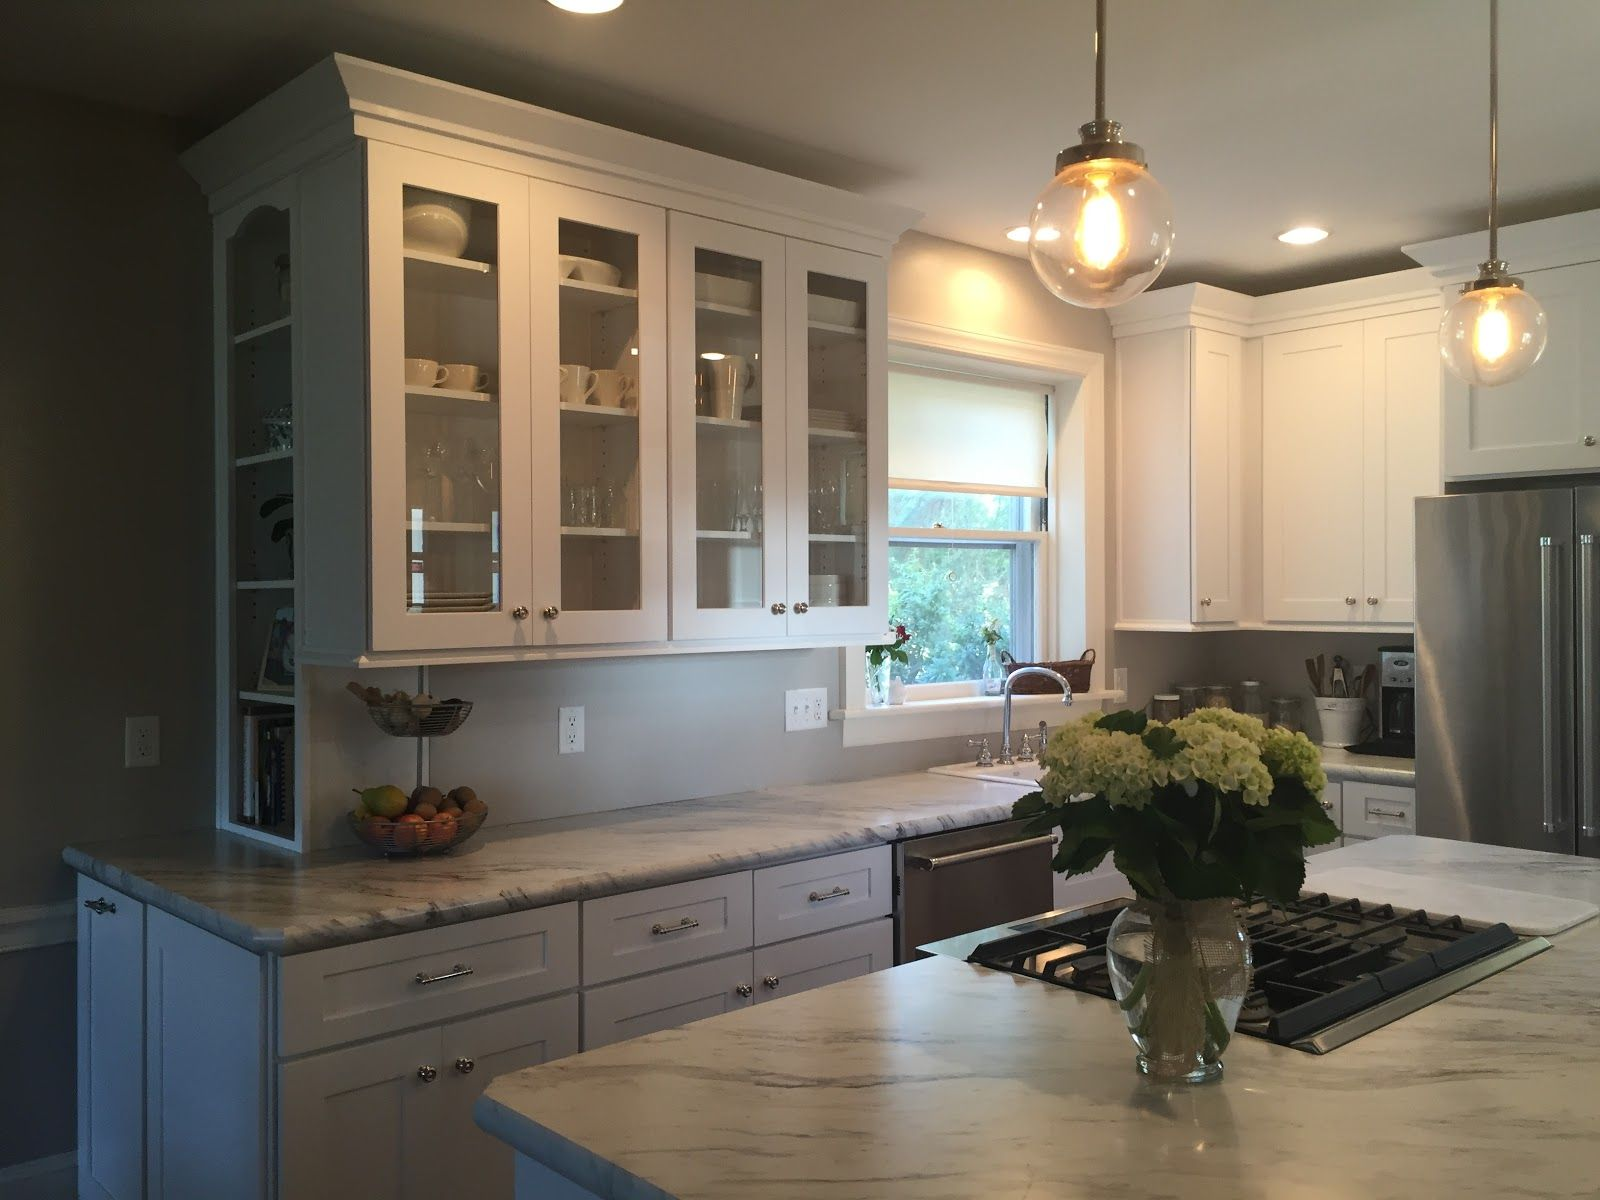 Cabinets Remodeling White Shaker Elite Kitchen Cabinets Remodeling By Lily Ann